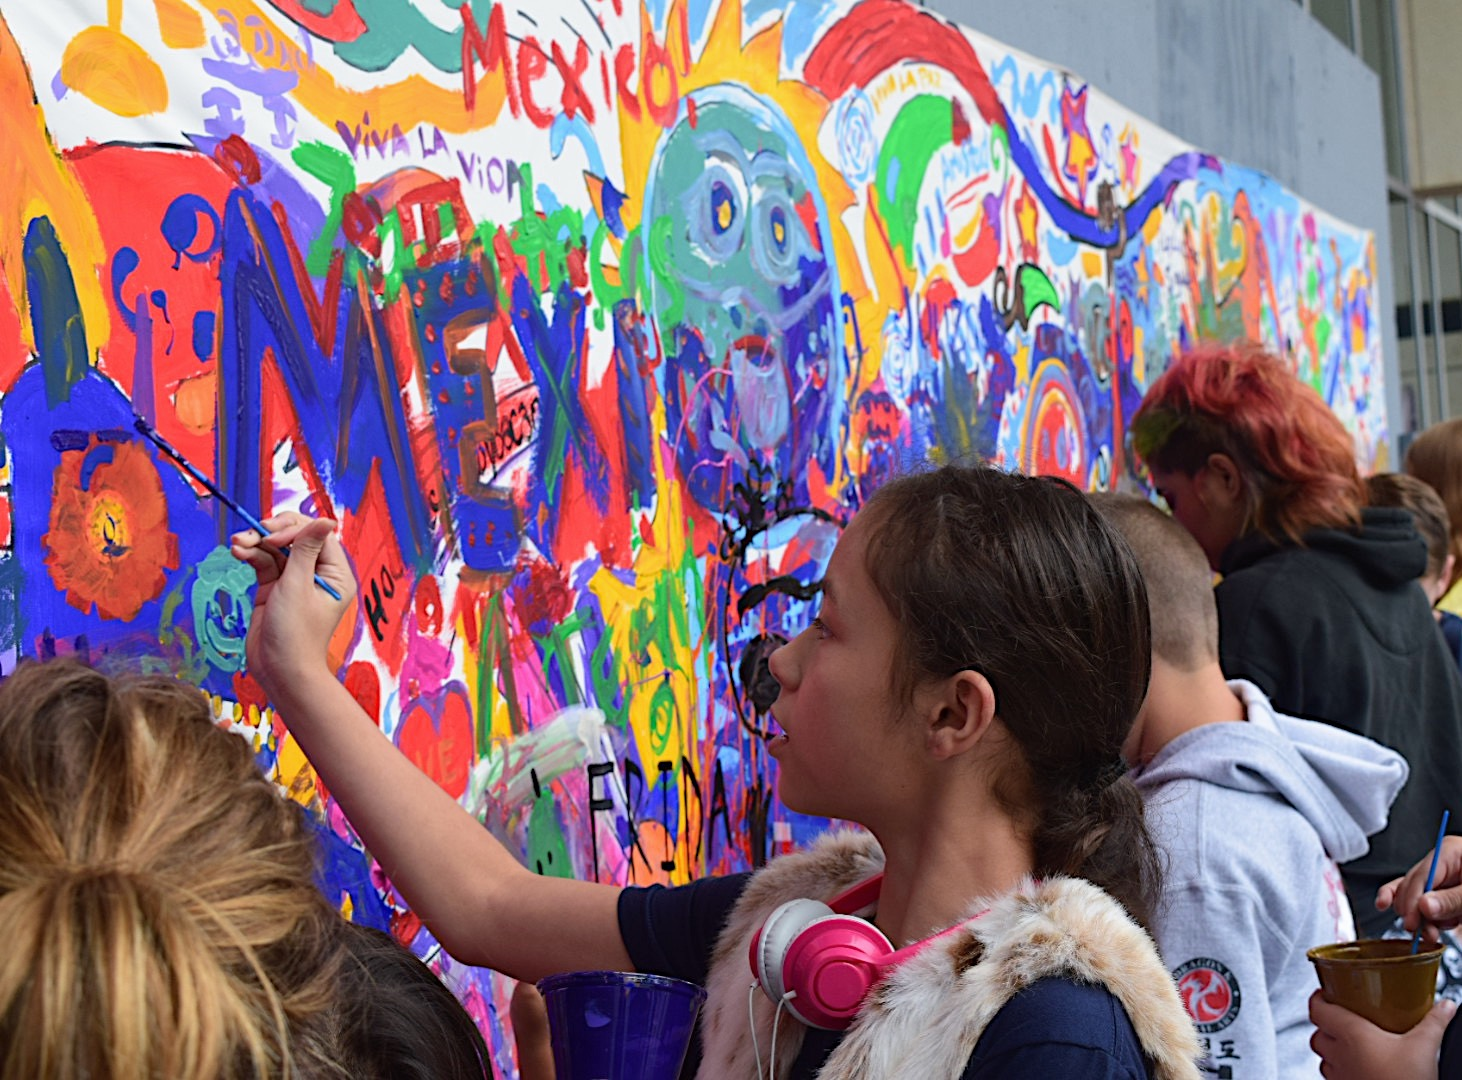 Adults+and+children+alike+gathering+to+contribute+to+the+community+mural.